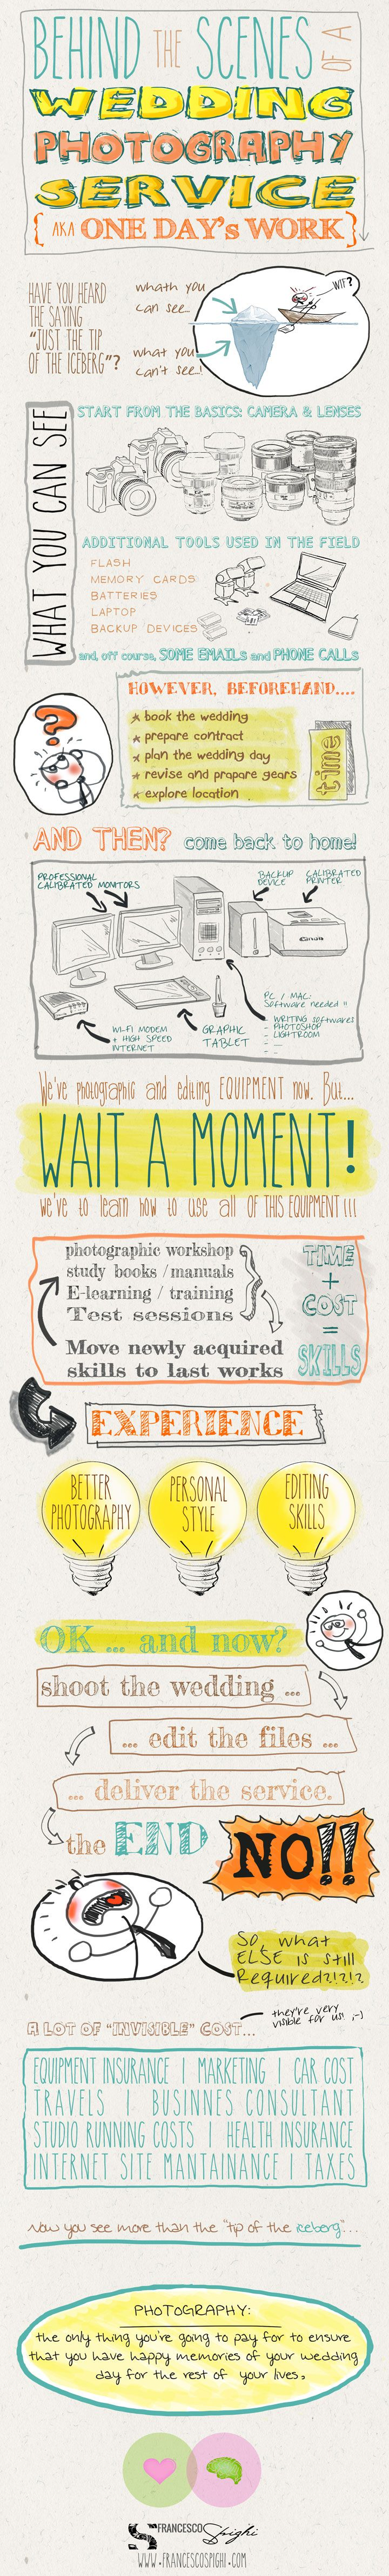 Wedding Photography Infographic: It's Not All Just 'In a Day's ...